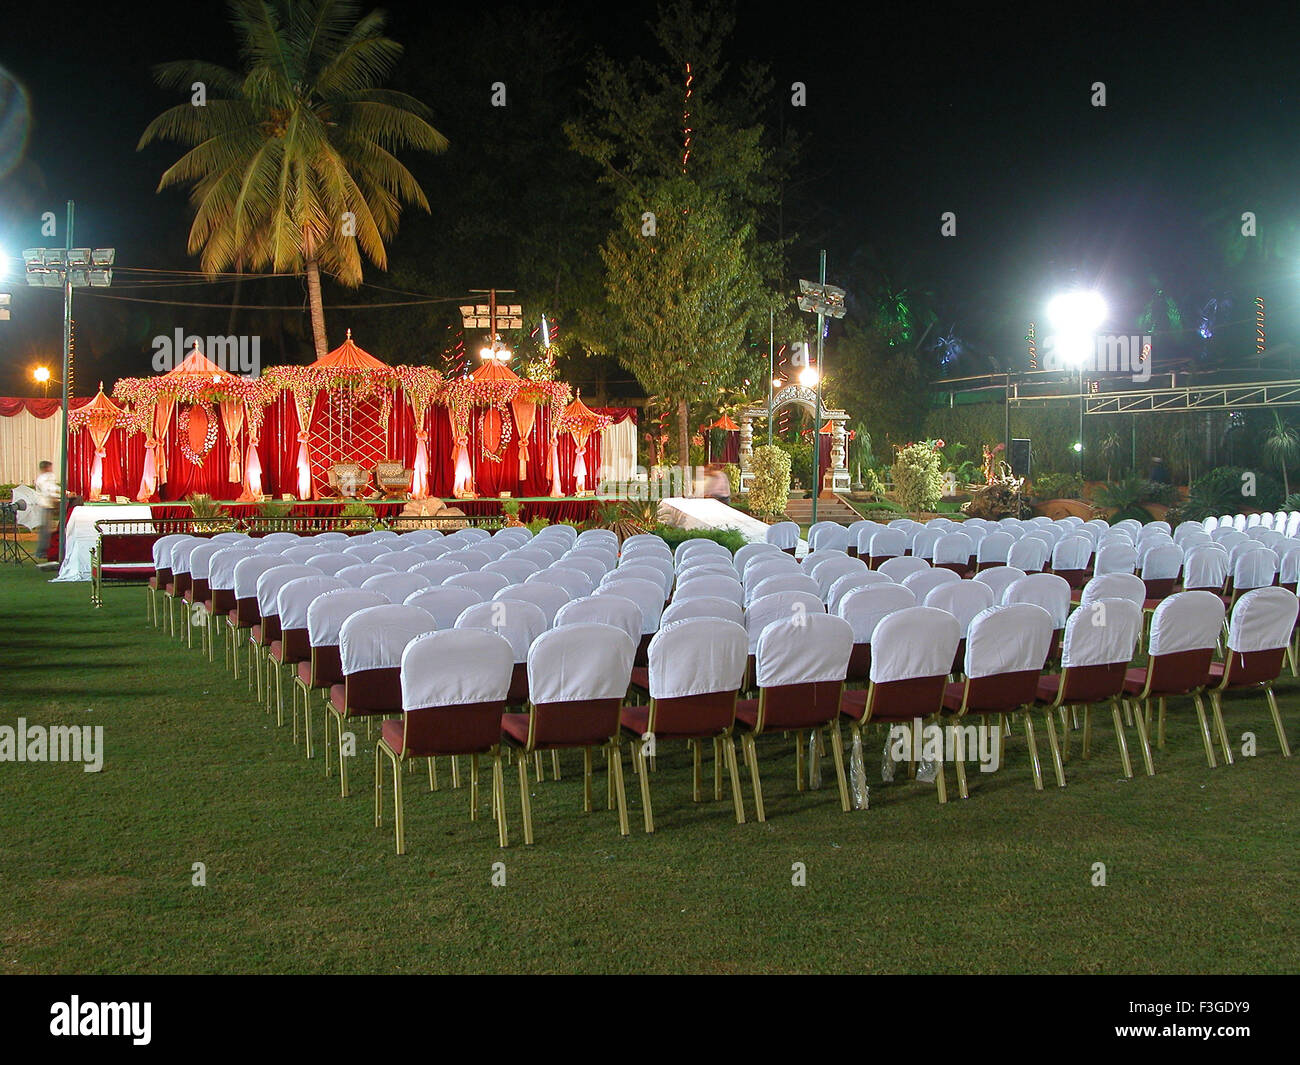 View of a wedding decoration india stock photo 88257997 alamy view of a wedding decoration india junglespirit Choice Image